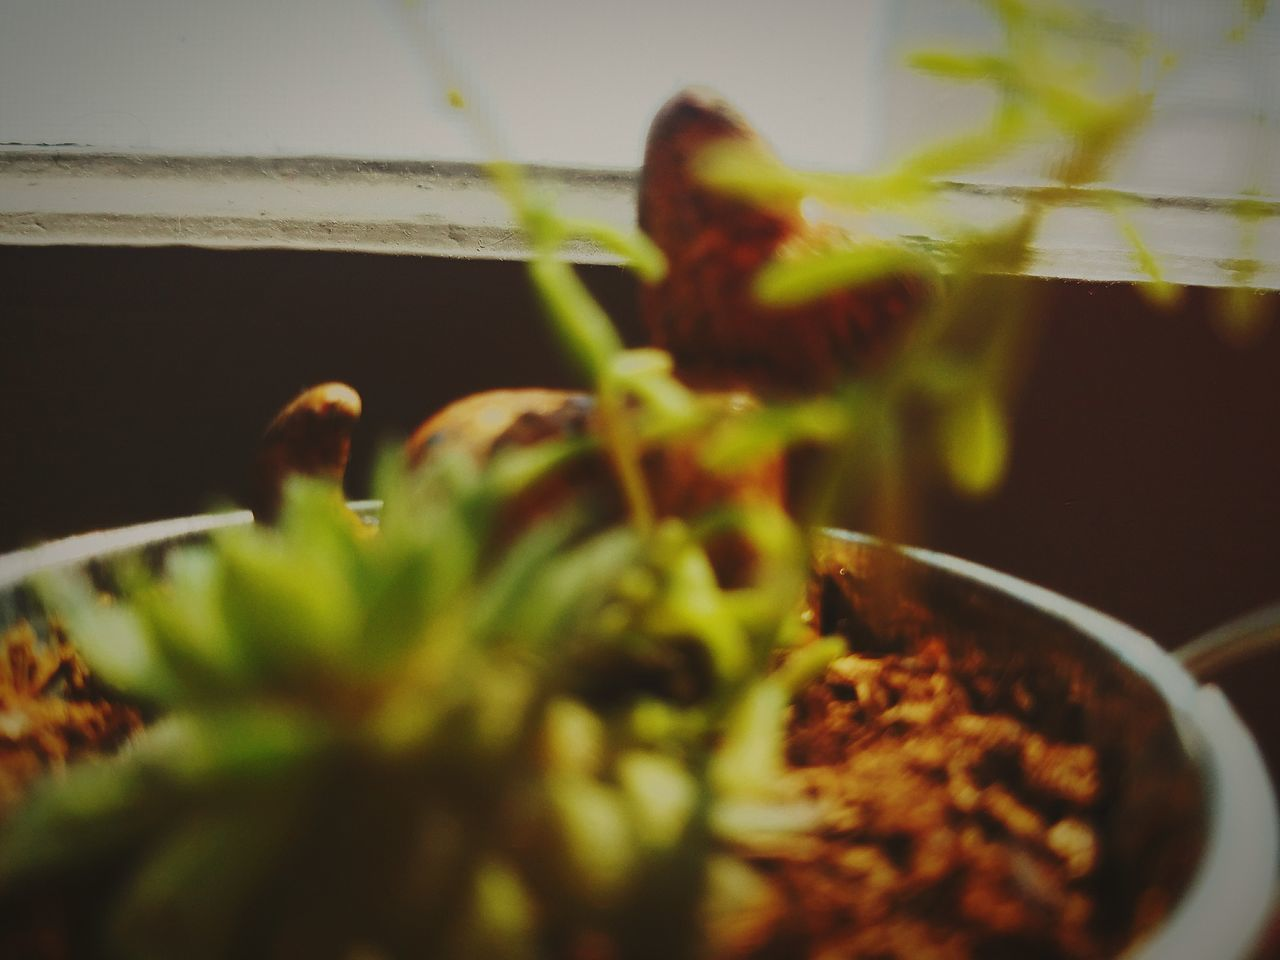 indoors, selective focus, one person, plant, growth, real people, food, freshness, day, close-up, healthy eating, nature, people